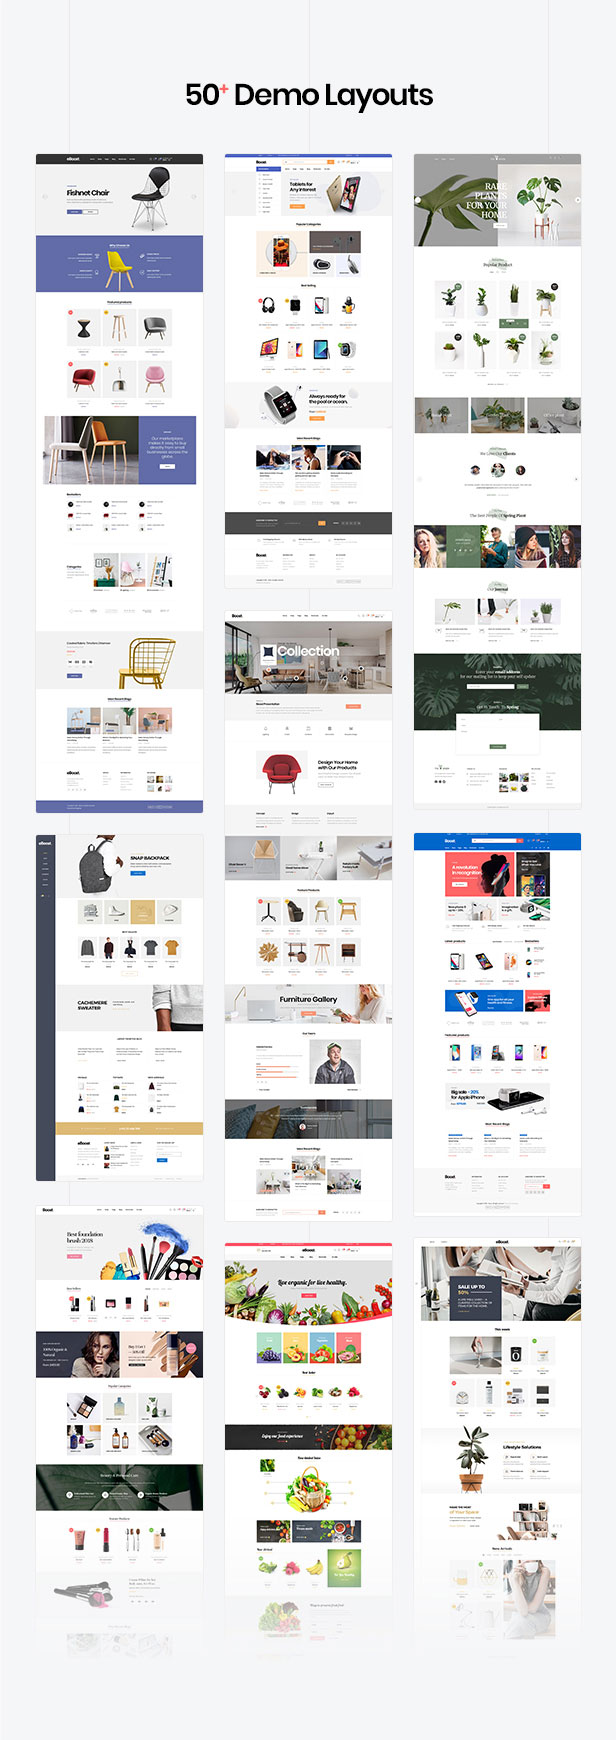 50+ homepages for fashion & shoes, Watch,Food, Plant, Toys & Kids,Jewellery & Accessories, Lawn & Garden Tools, animal & pet, Pharmacy, Gym sport, Cosmetics, Furniture & Decor, Health & Beauty